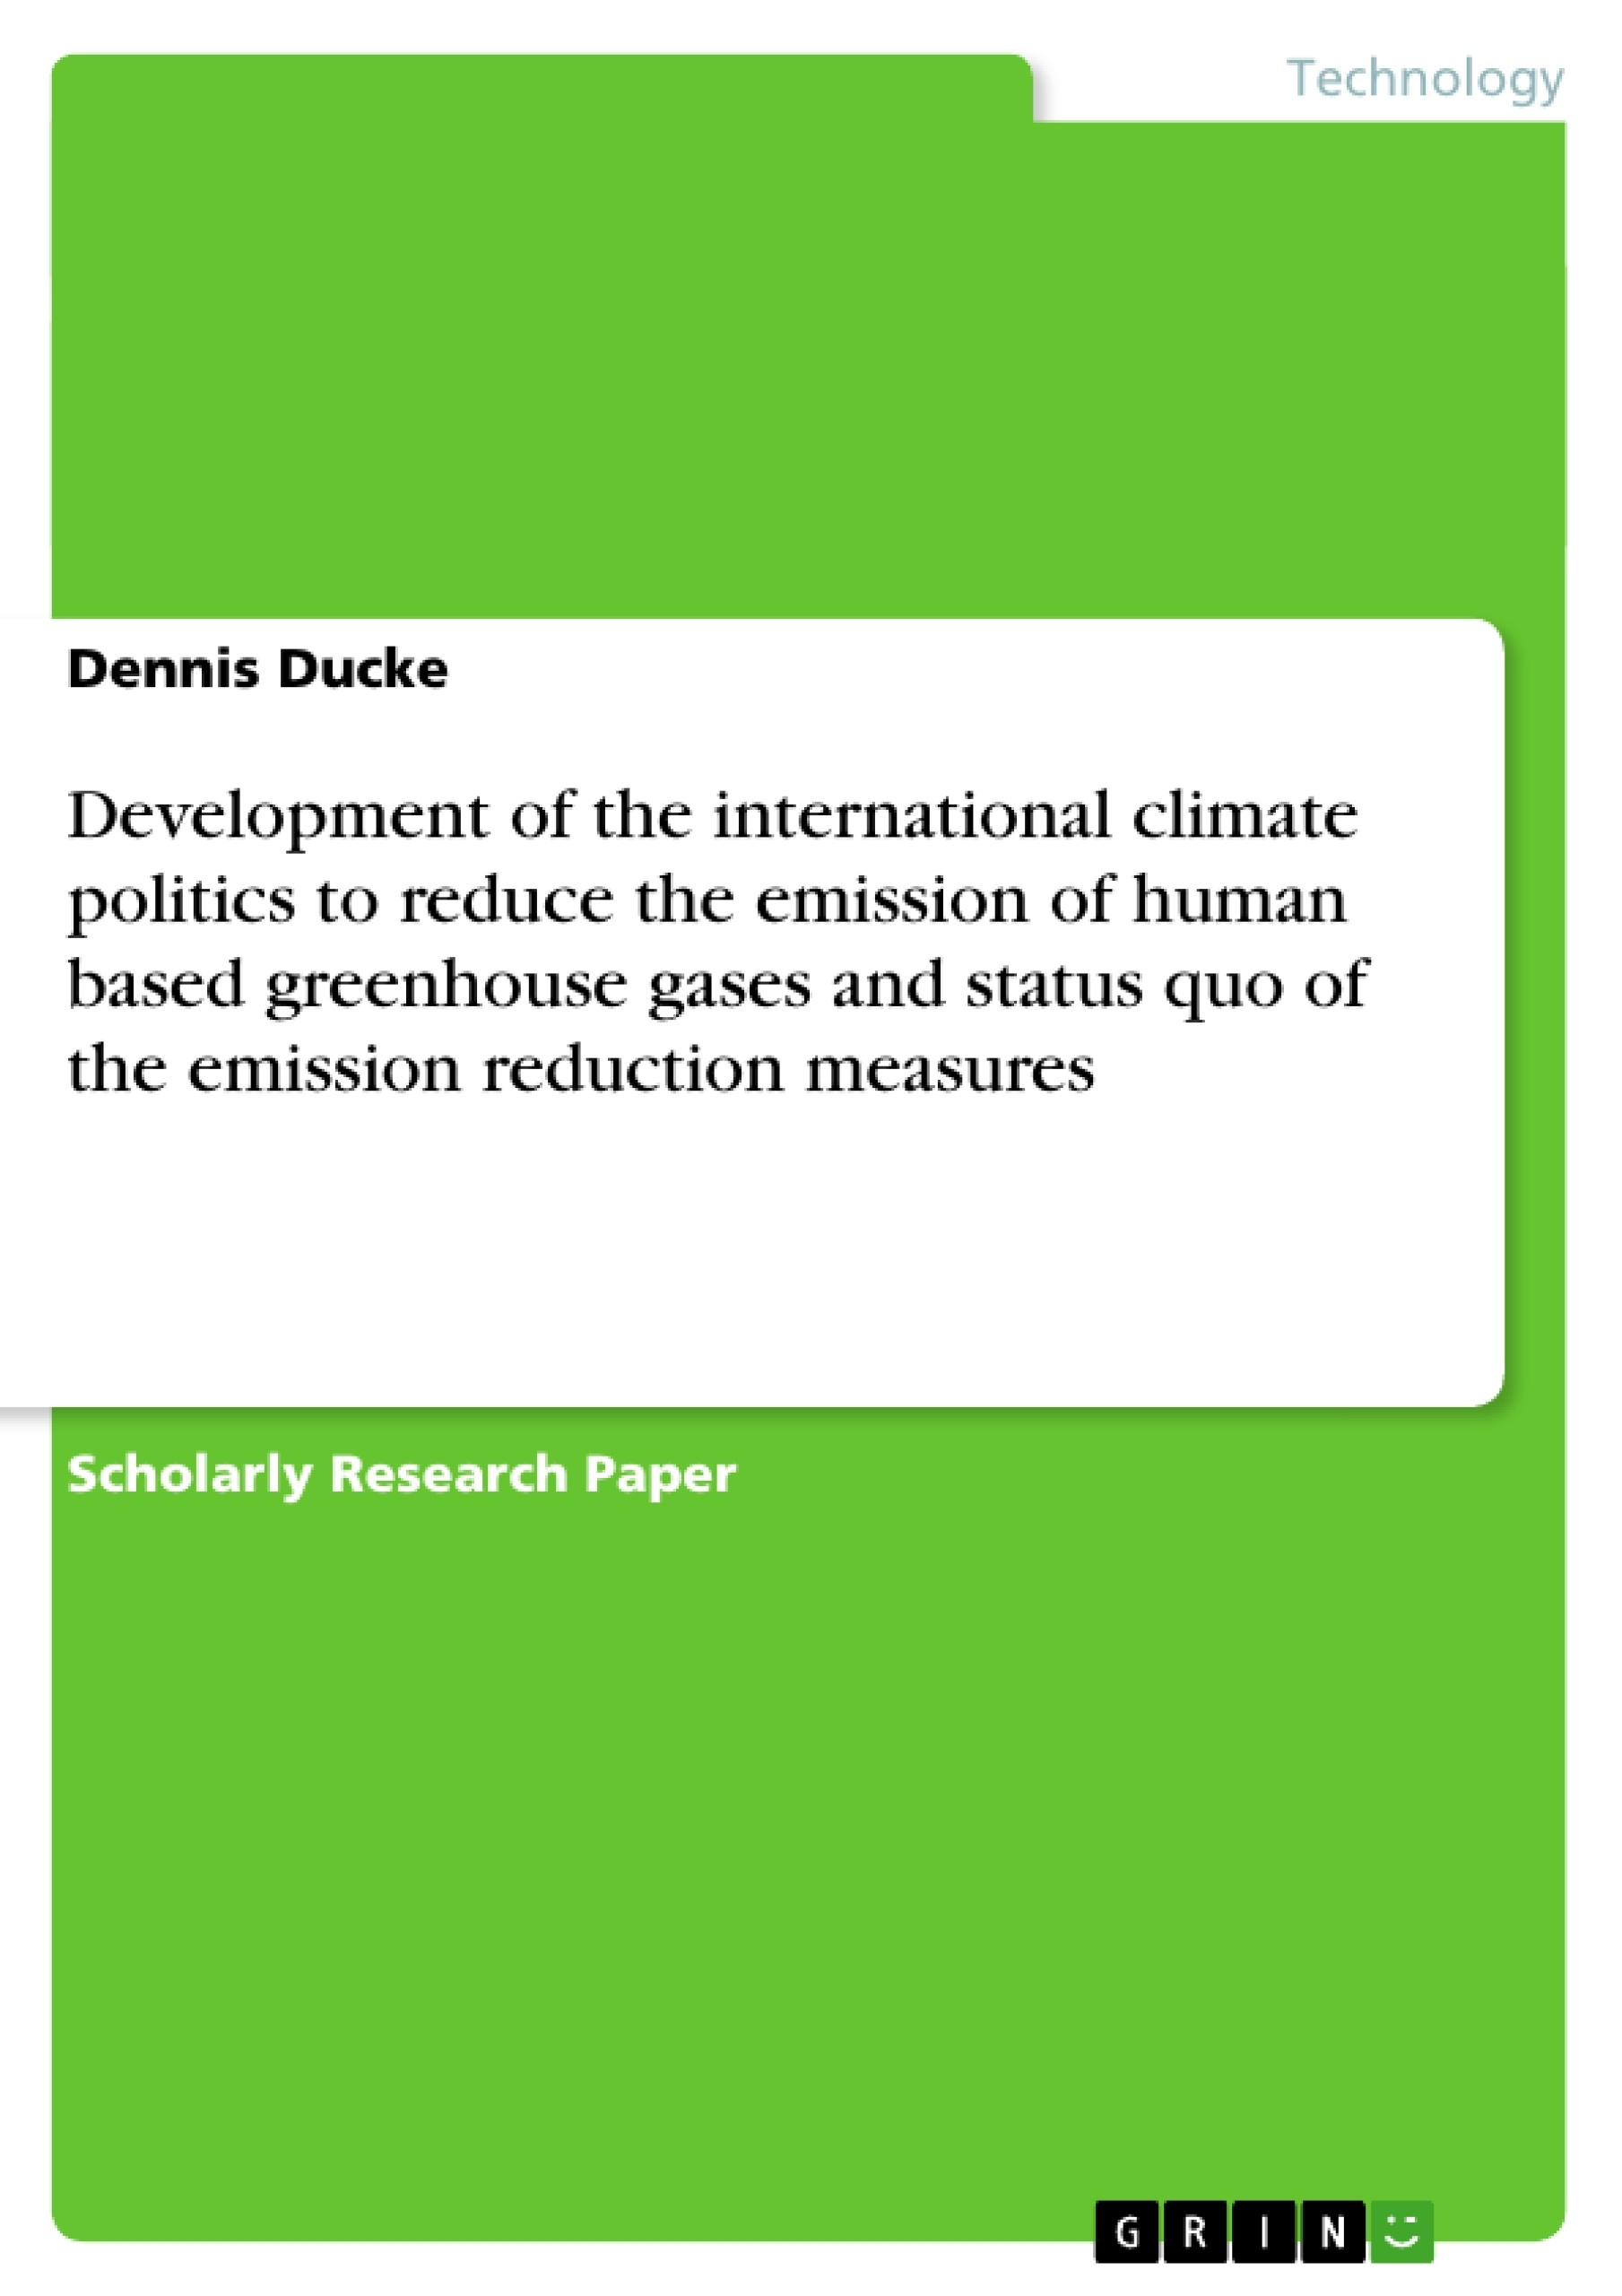 Title: Development of the international climate politics to reduce the emission of human based greenhouse gases and status quo of the emission reduction measures